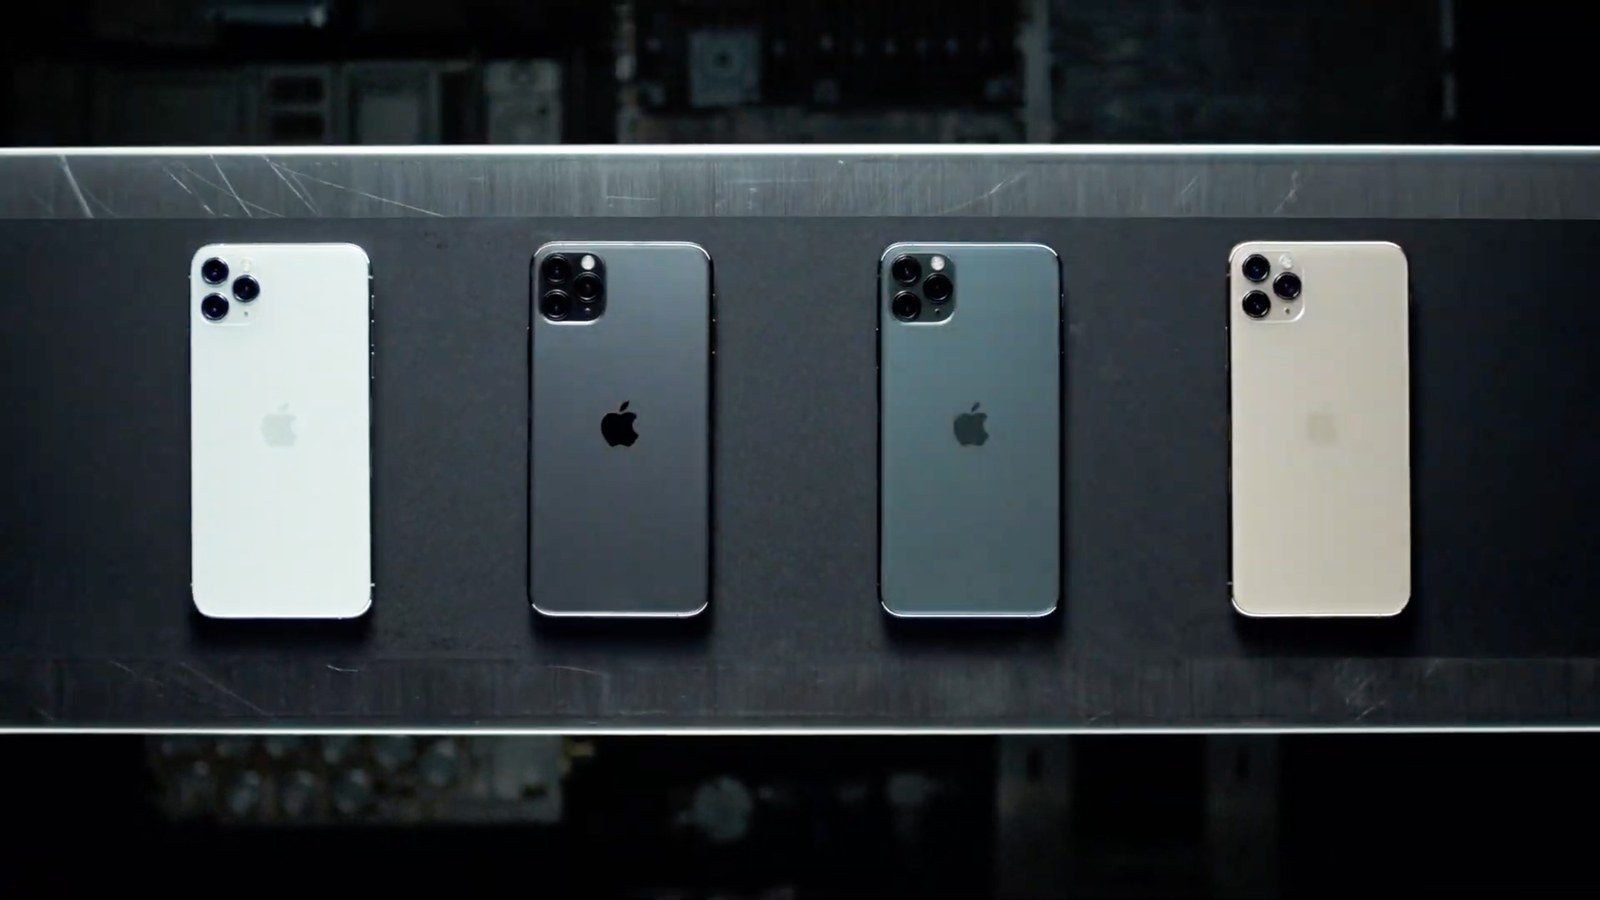 iPhone 11: Features, Release Date, Price, Cameras